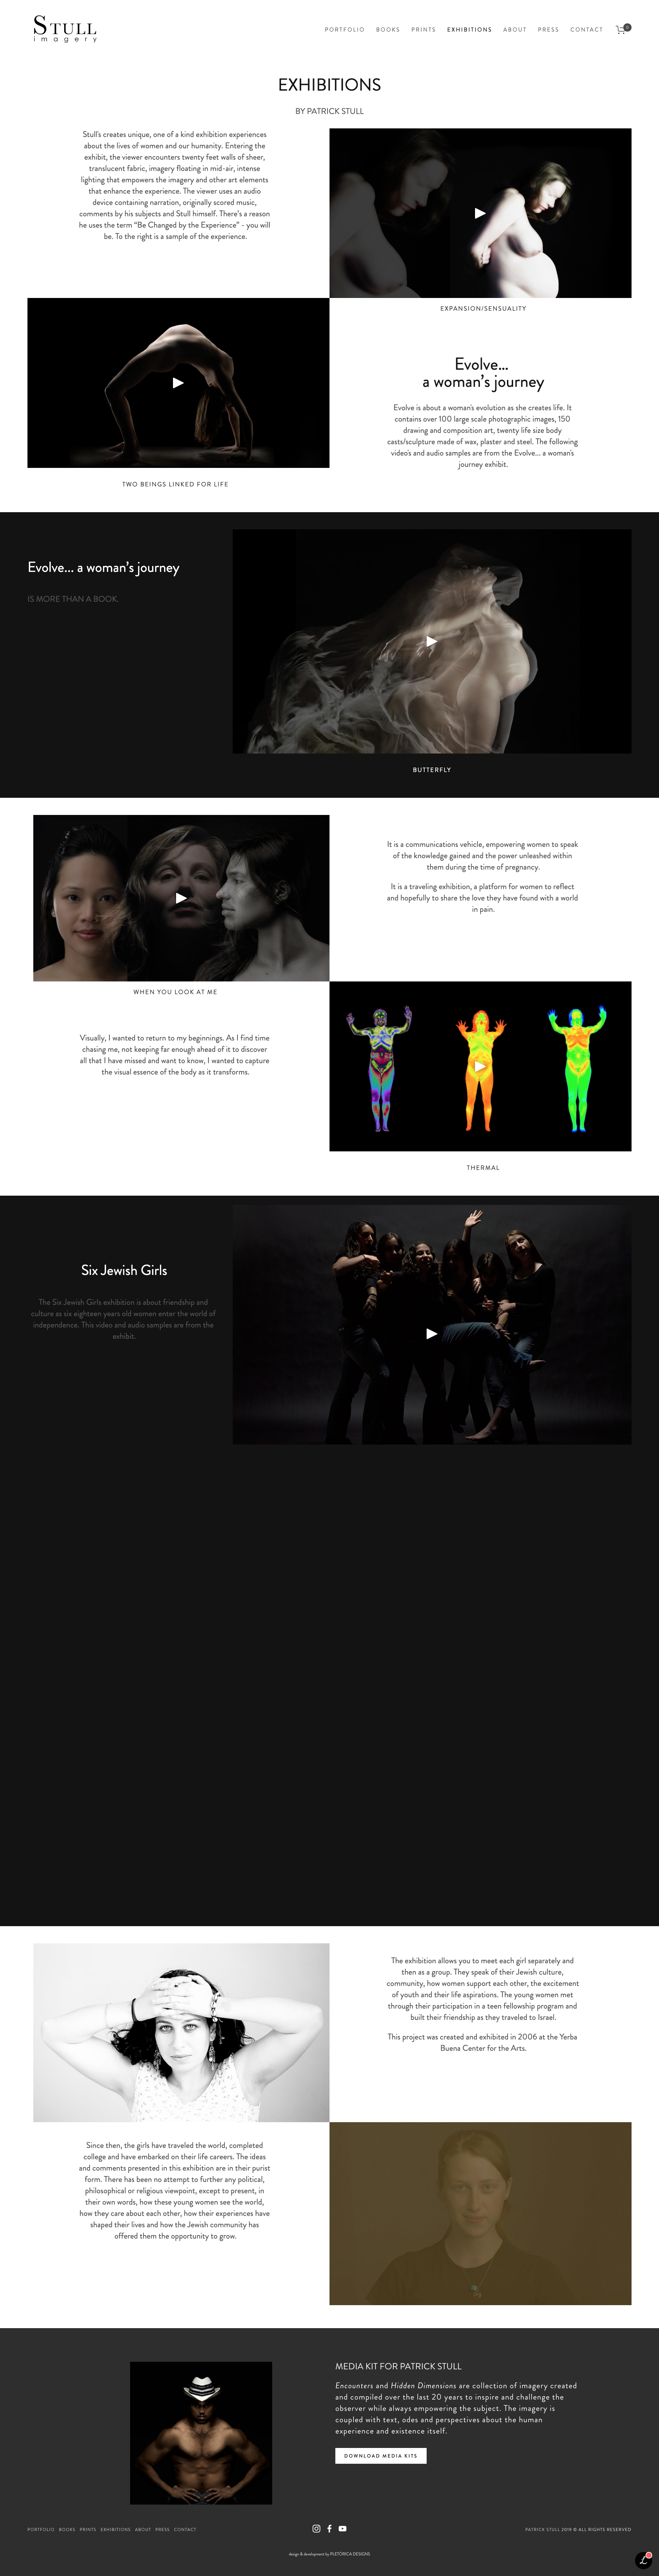 Exhibitions — Patrick Stull Imagery.png